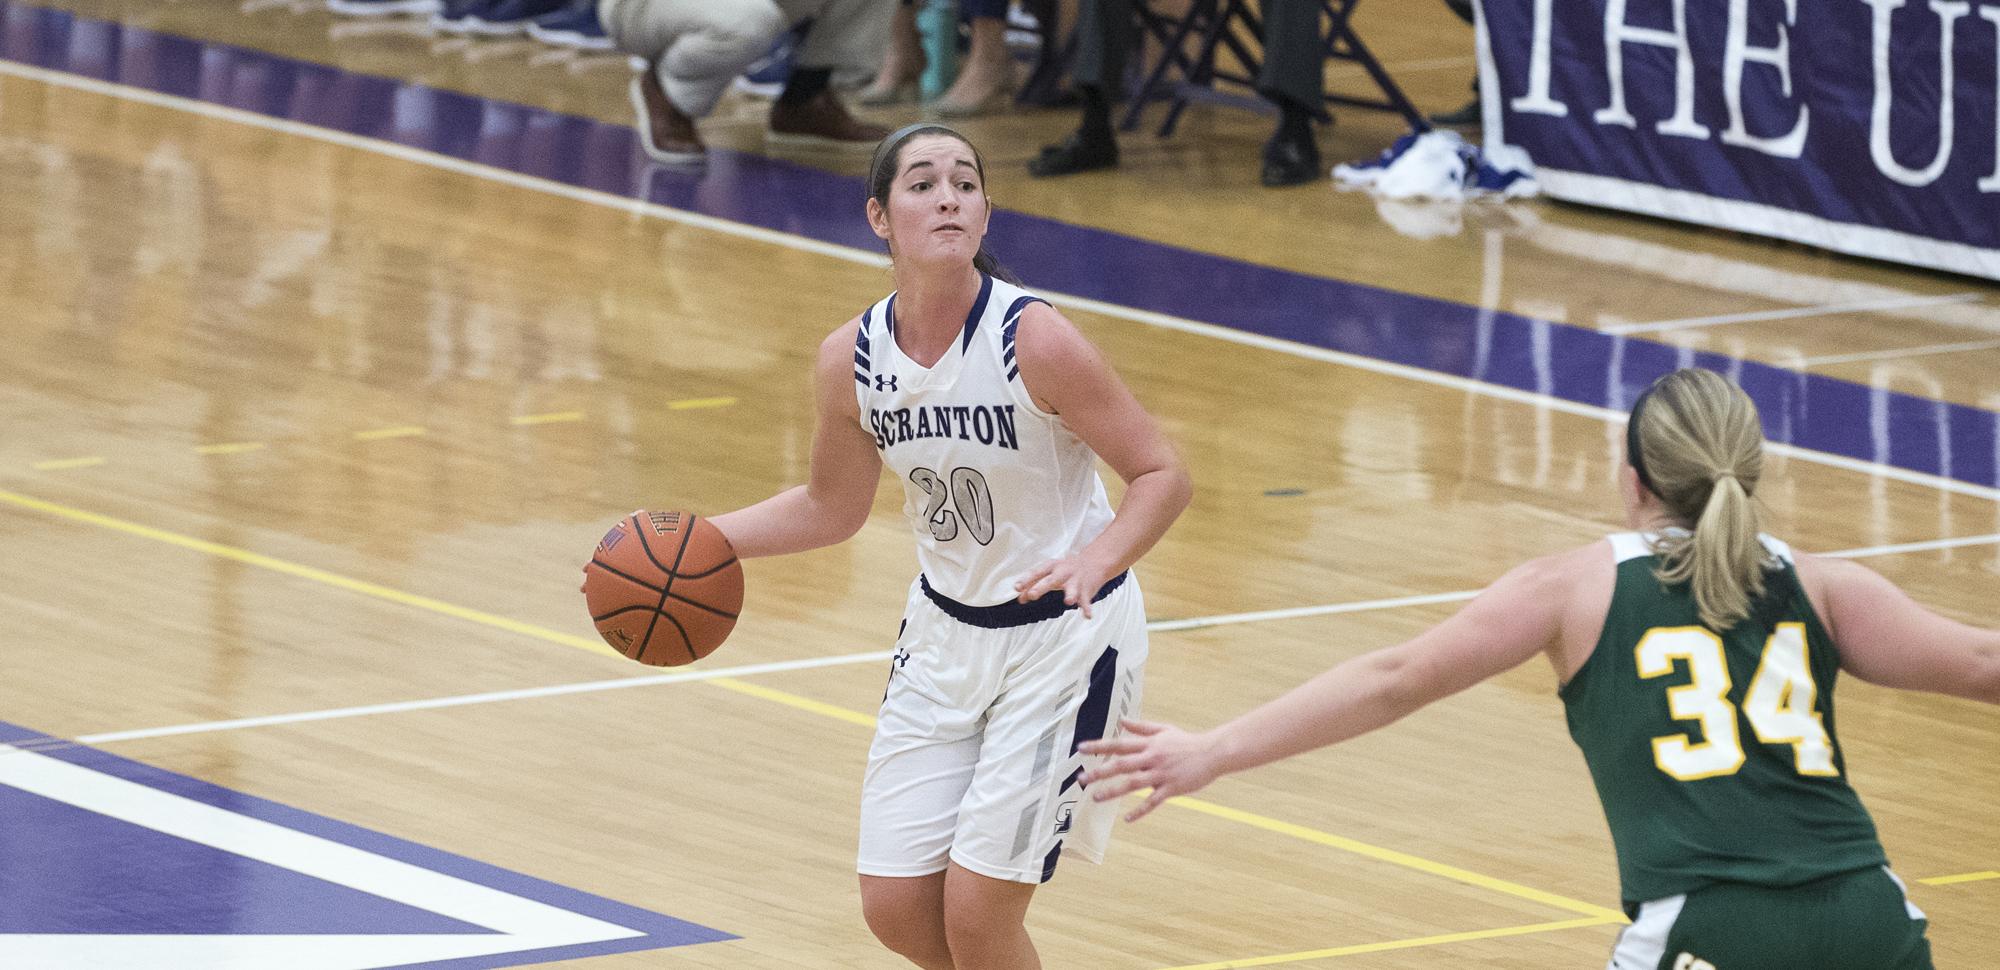 Senior guard Katie Broderick had 12 points, including a pair of 3-pointers, on Monday night.